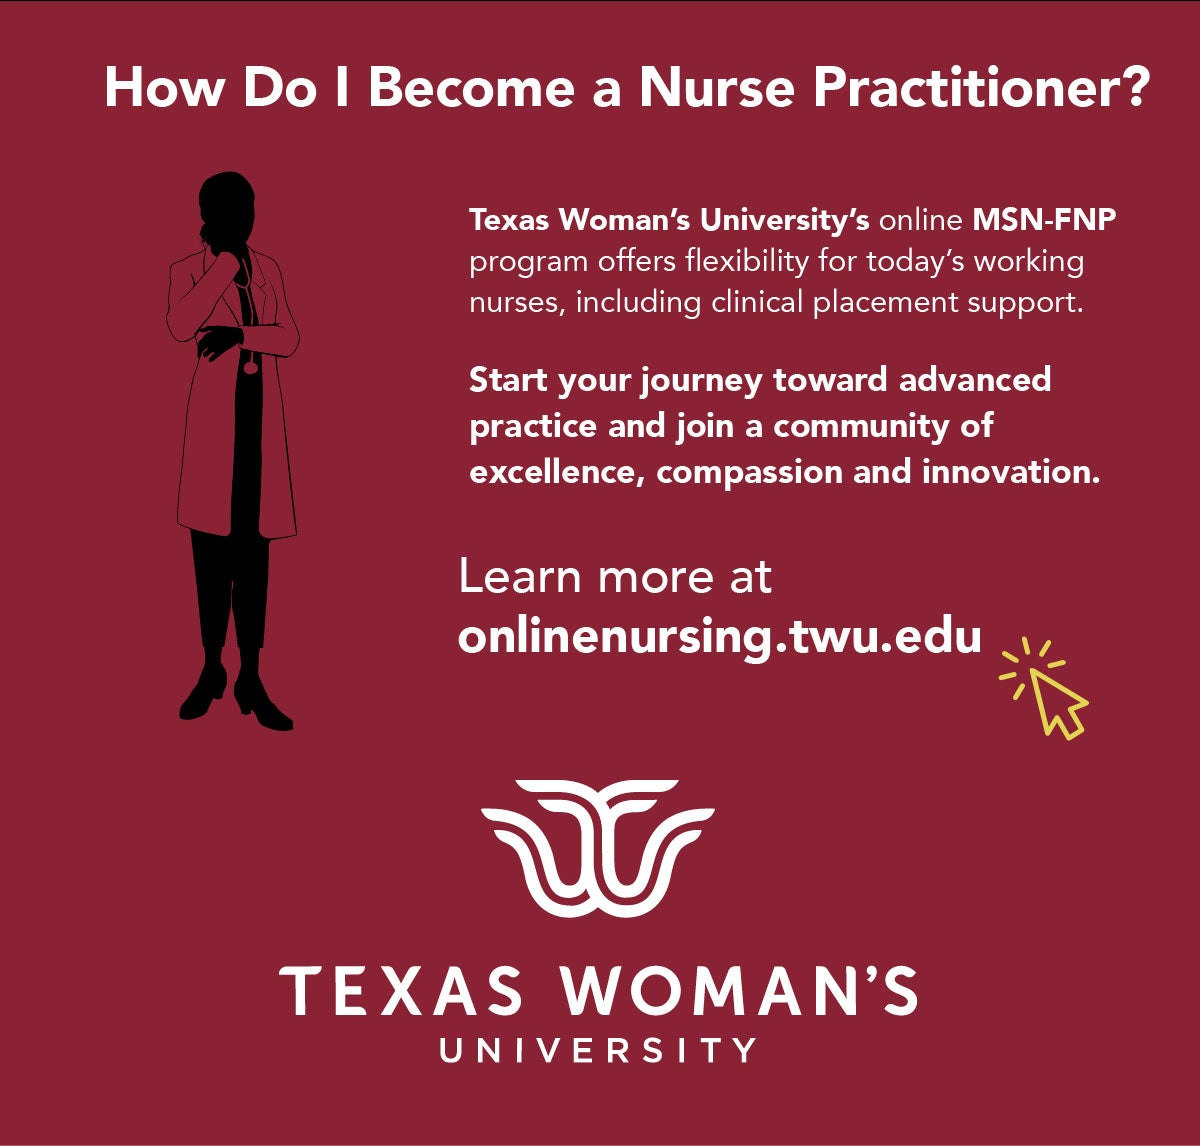 Texas Woman's University's online MSN-FNP program offers flexibility for today's working nurses.